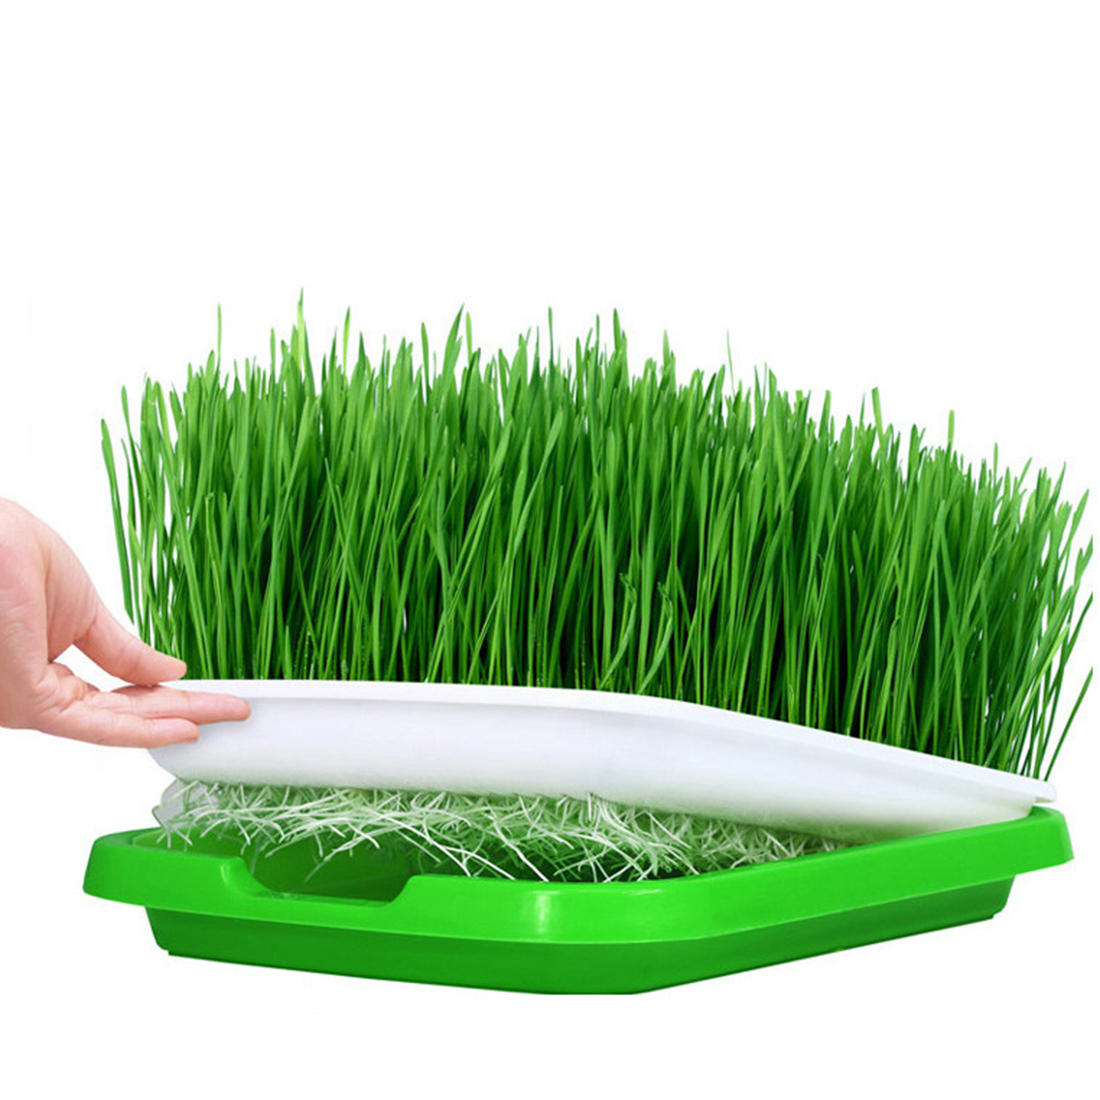 5-set Double-layer Seed Sprouter Tray Hydroponics Basket Seeding Germination Tray - Green + White